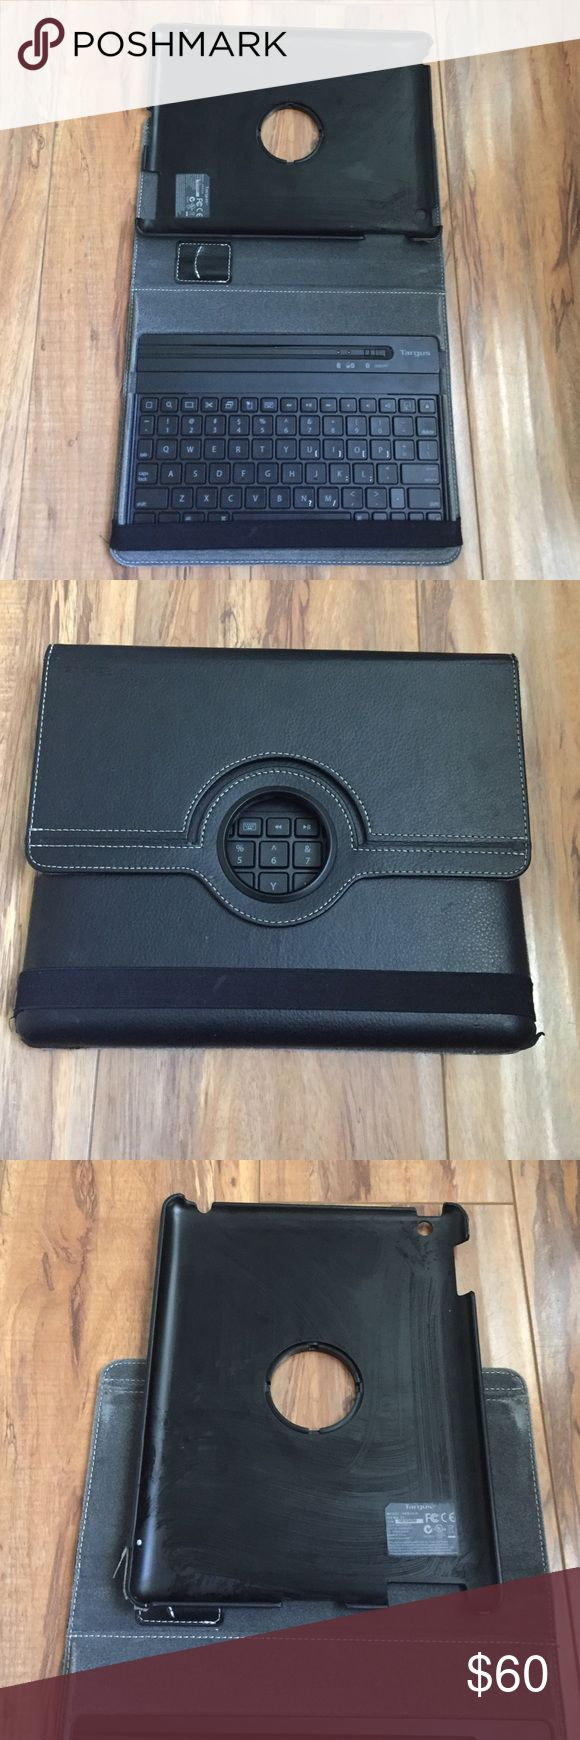 iPad 4th generation case holder/keyboard in one! iPad 4th generation case holder/keyboard in one! Gently used, good condition... keyboard works perfectly *NOTE* charger for keyboard NOT included Targus  Other